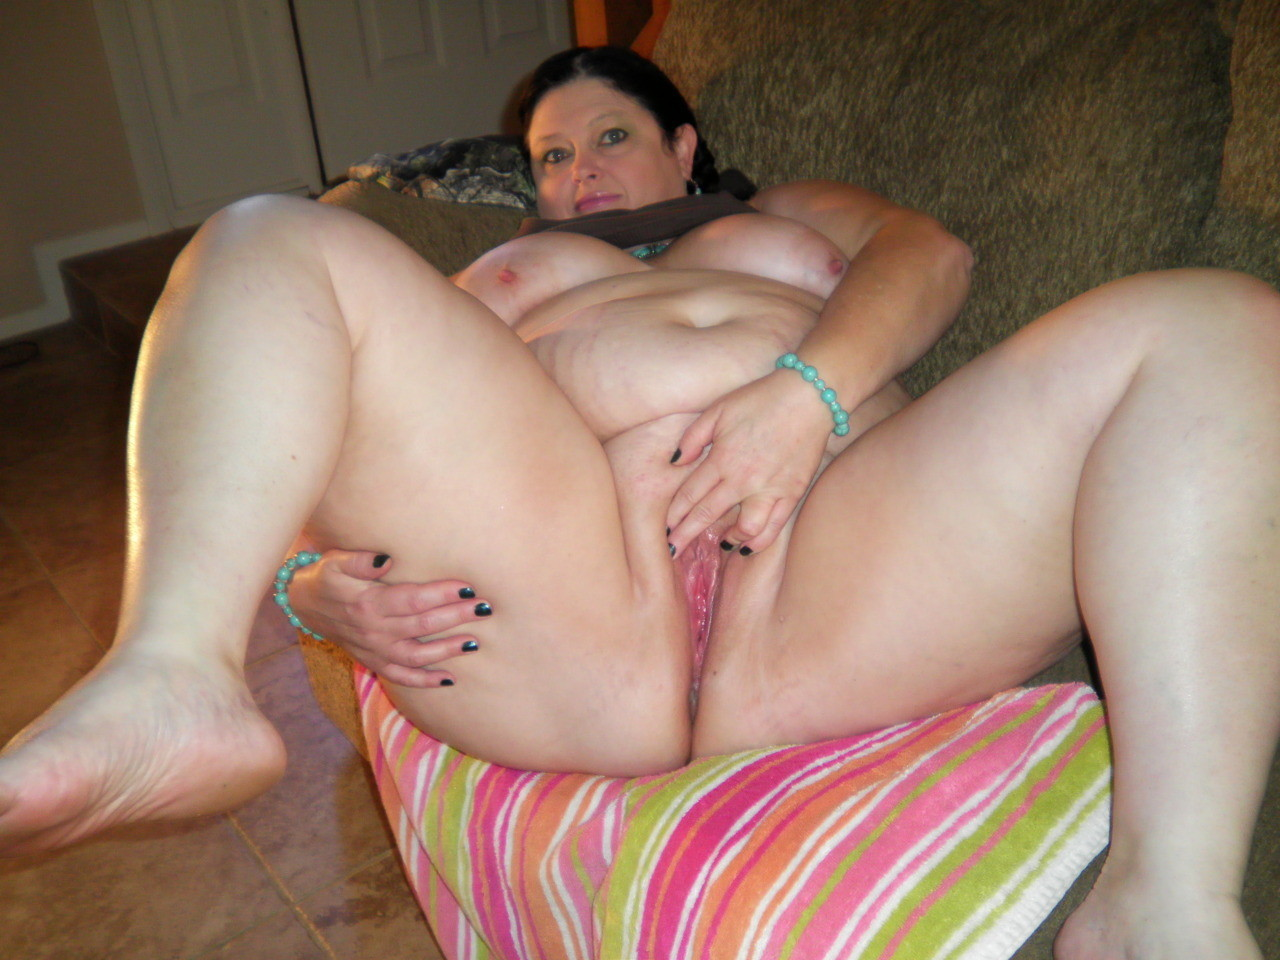 Gauche anal bbw mature housewives shit.. She has